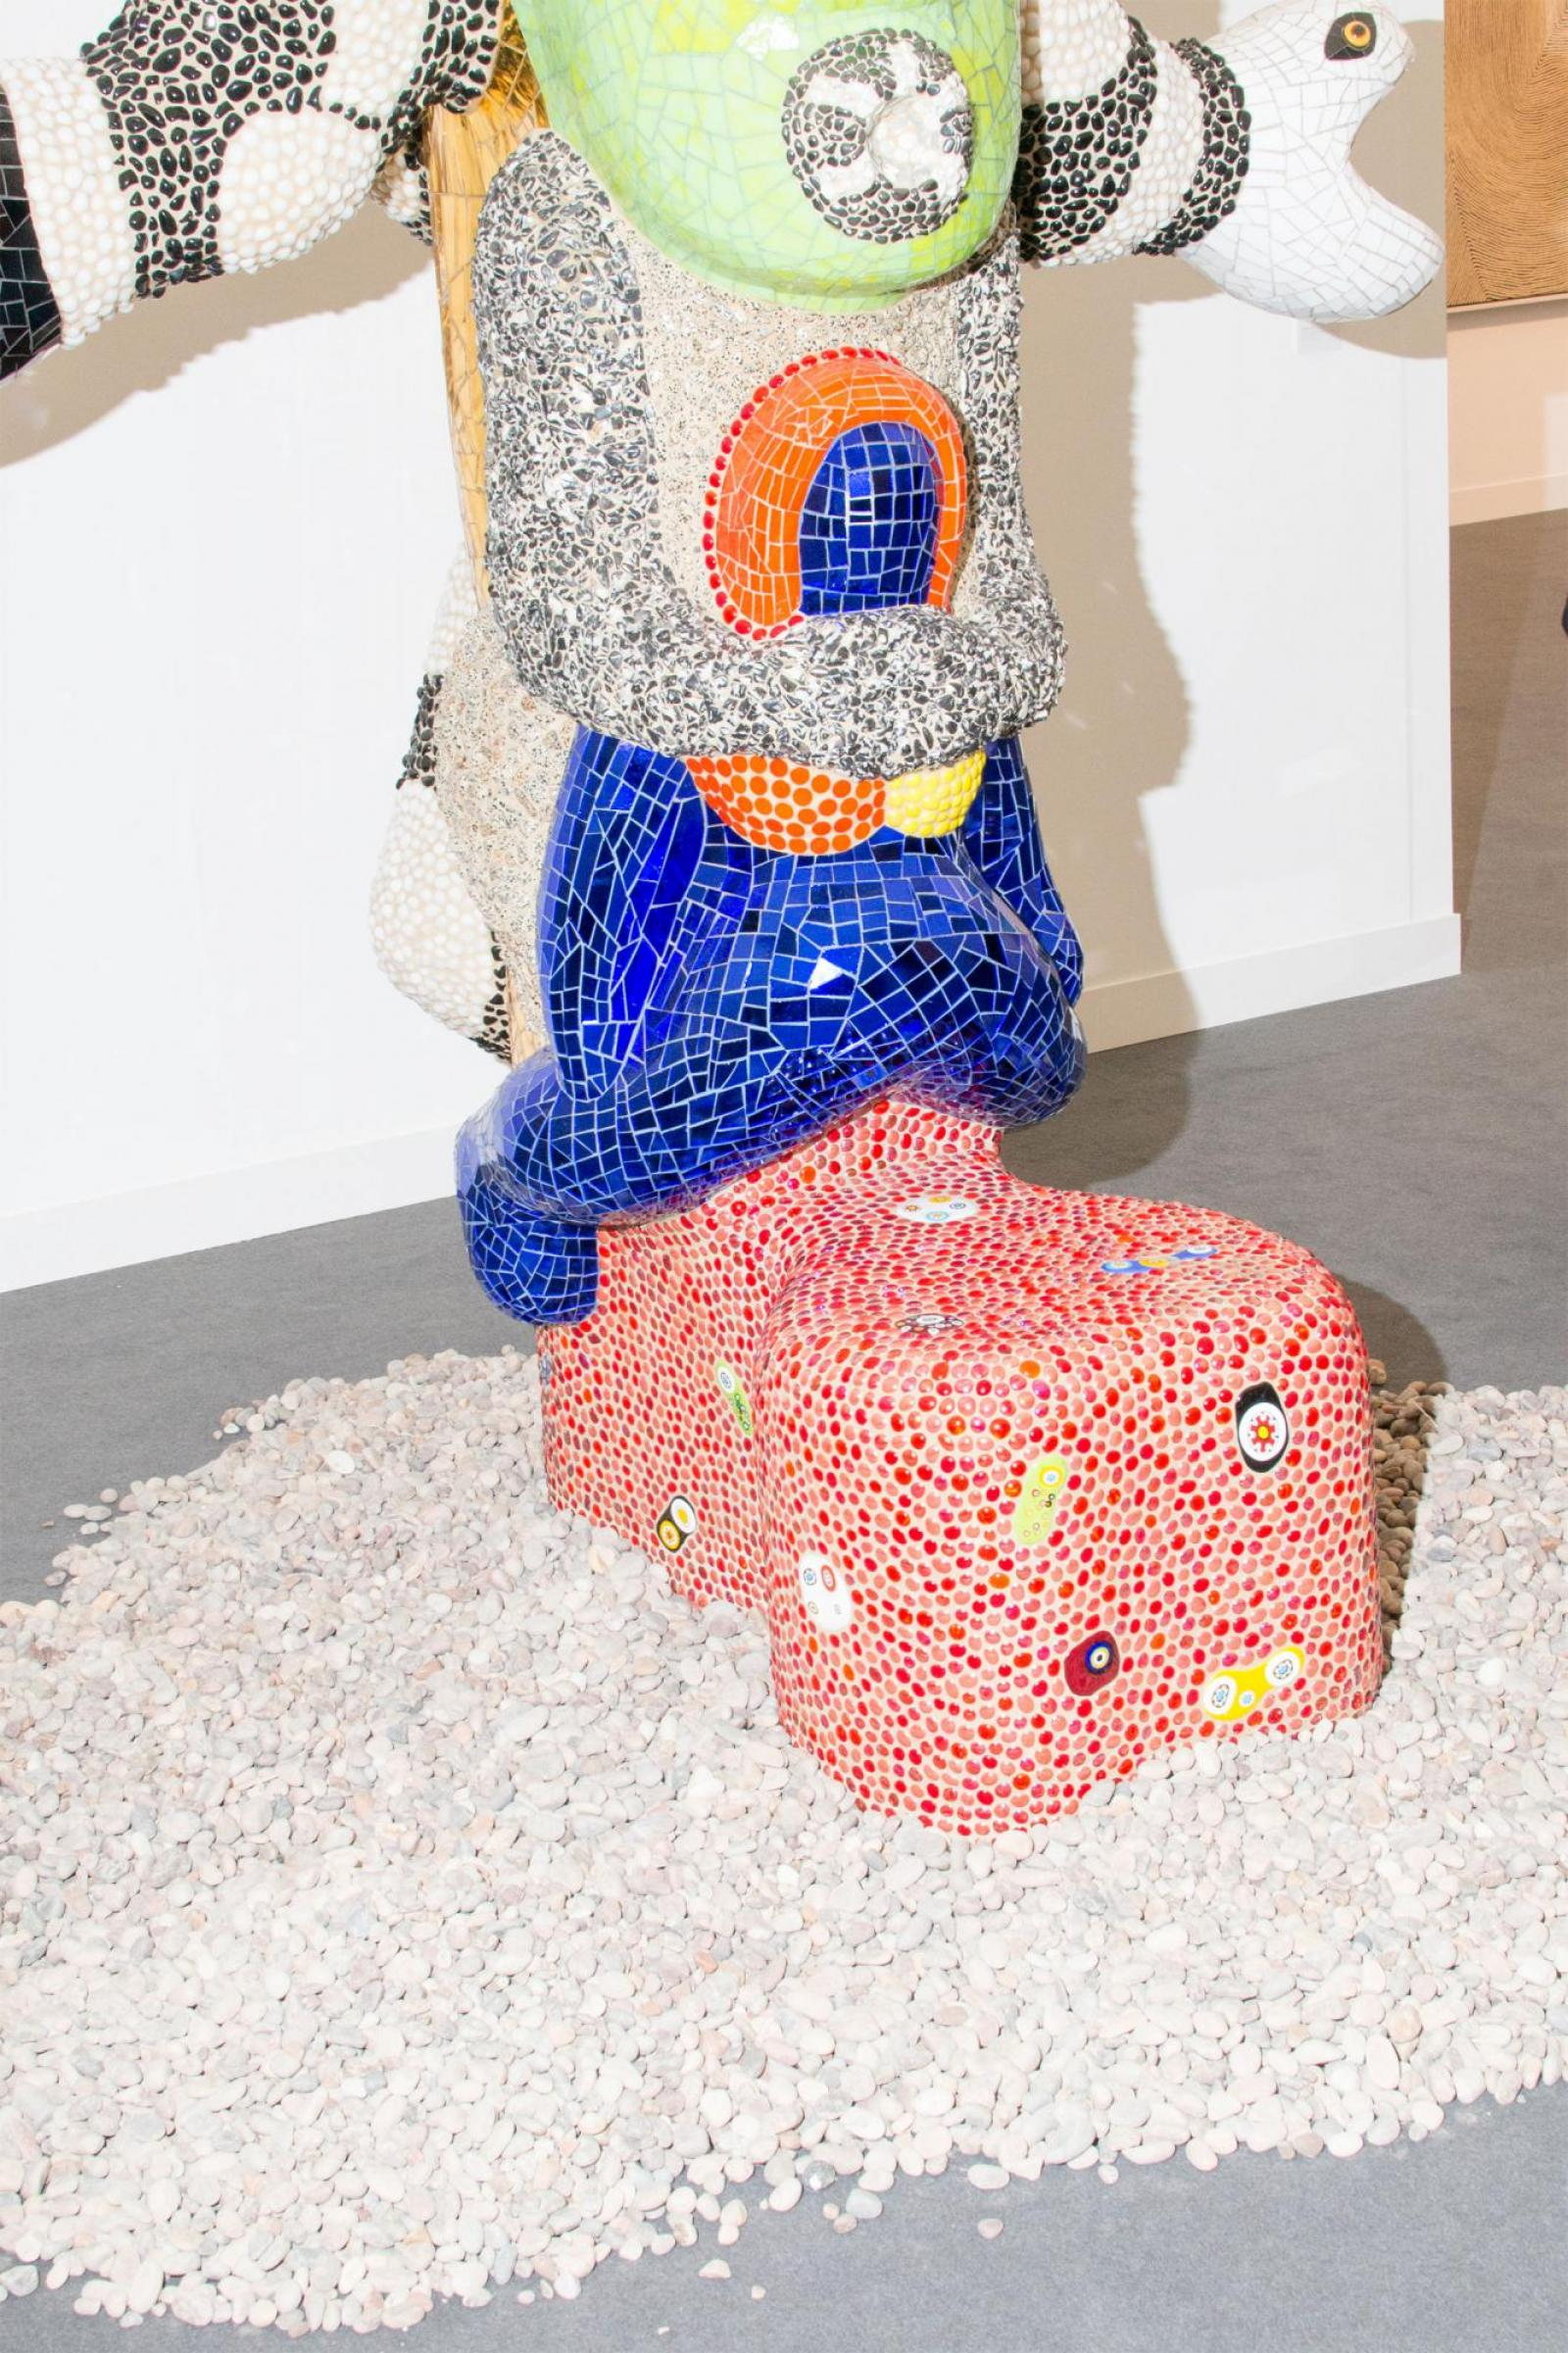 Niki de Saint Phalle at Salon 94